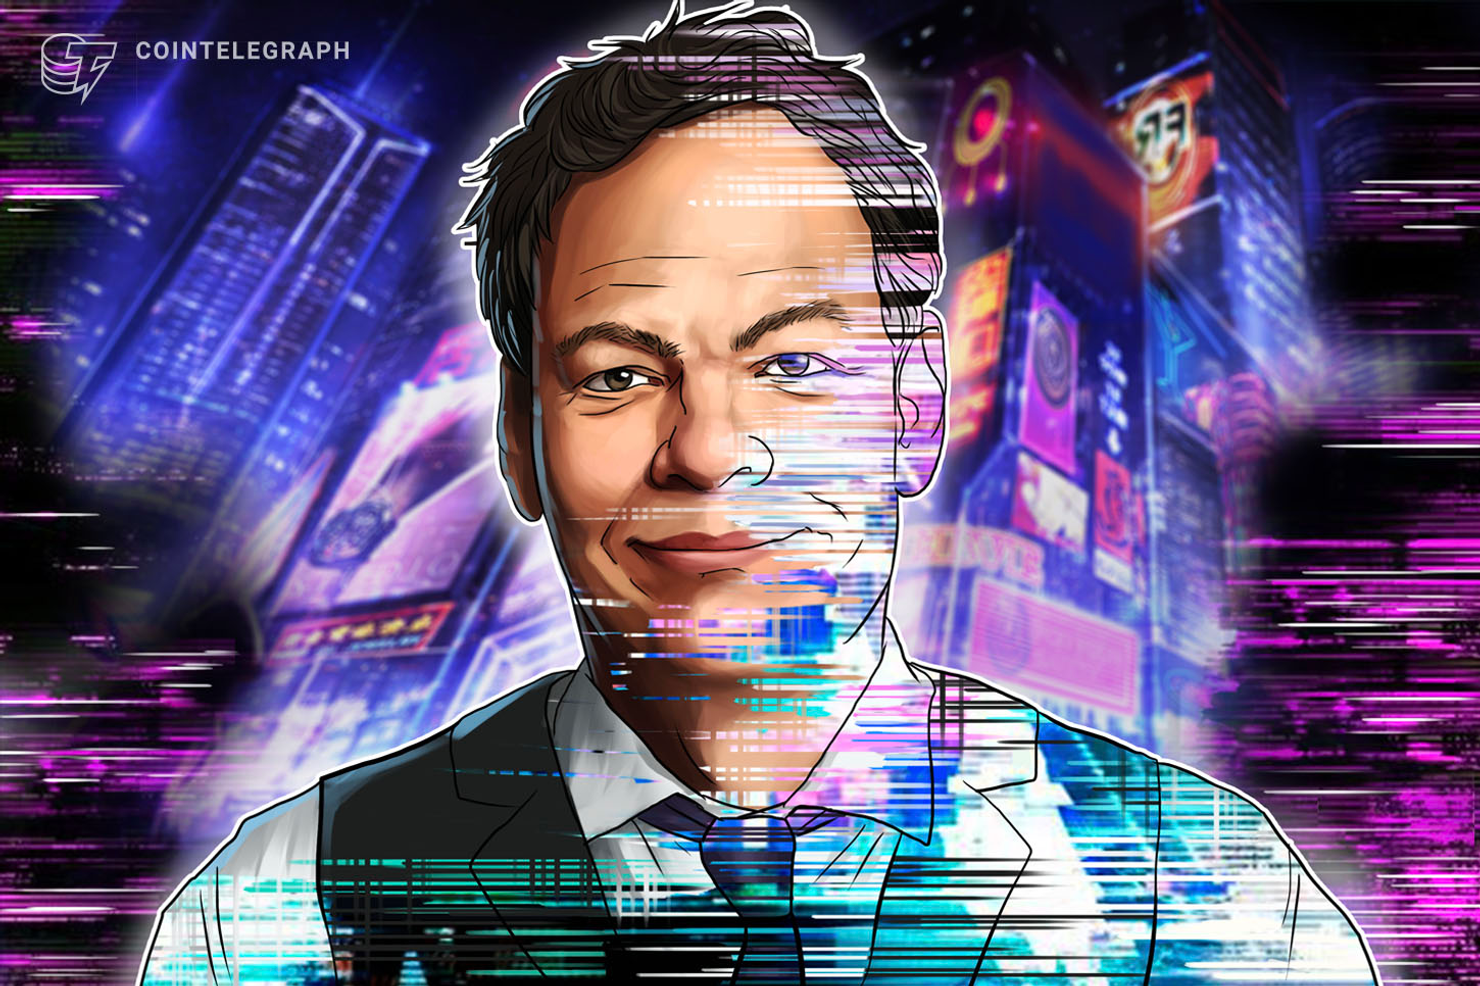 Keiser: Bitcoin Could Cross $15,000 This Week, No Trust in Centralization